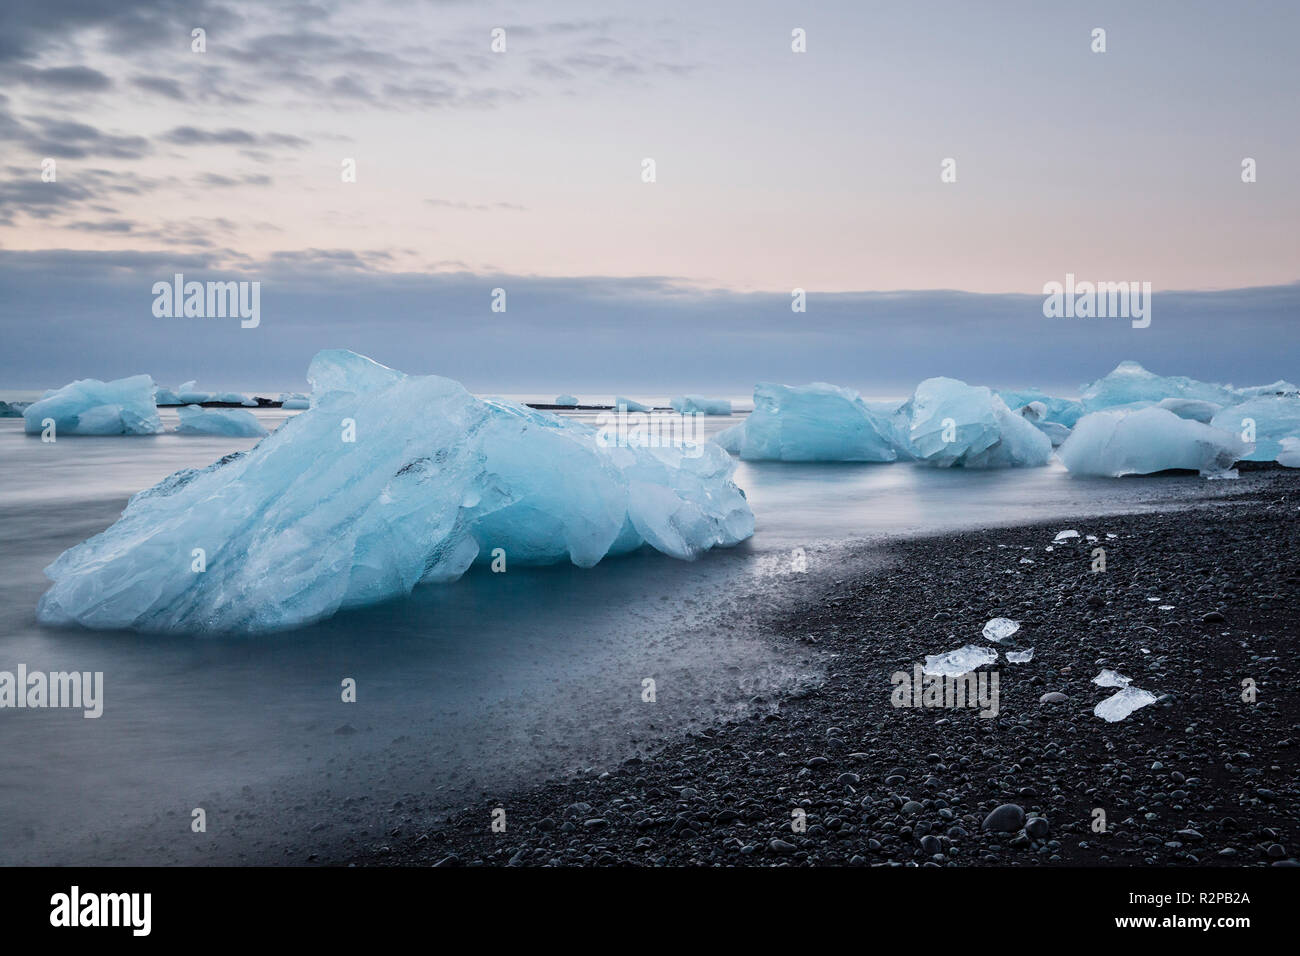 Blue shimmering blocks of ice in blurred water on black beach at Jökulsárlón (Diamond Beach), Iceland, morning mood - Stock Image